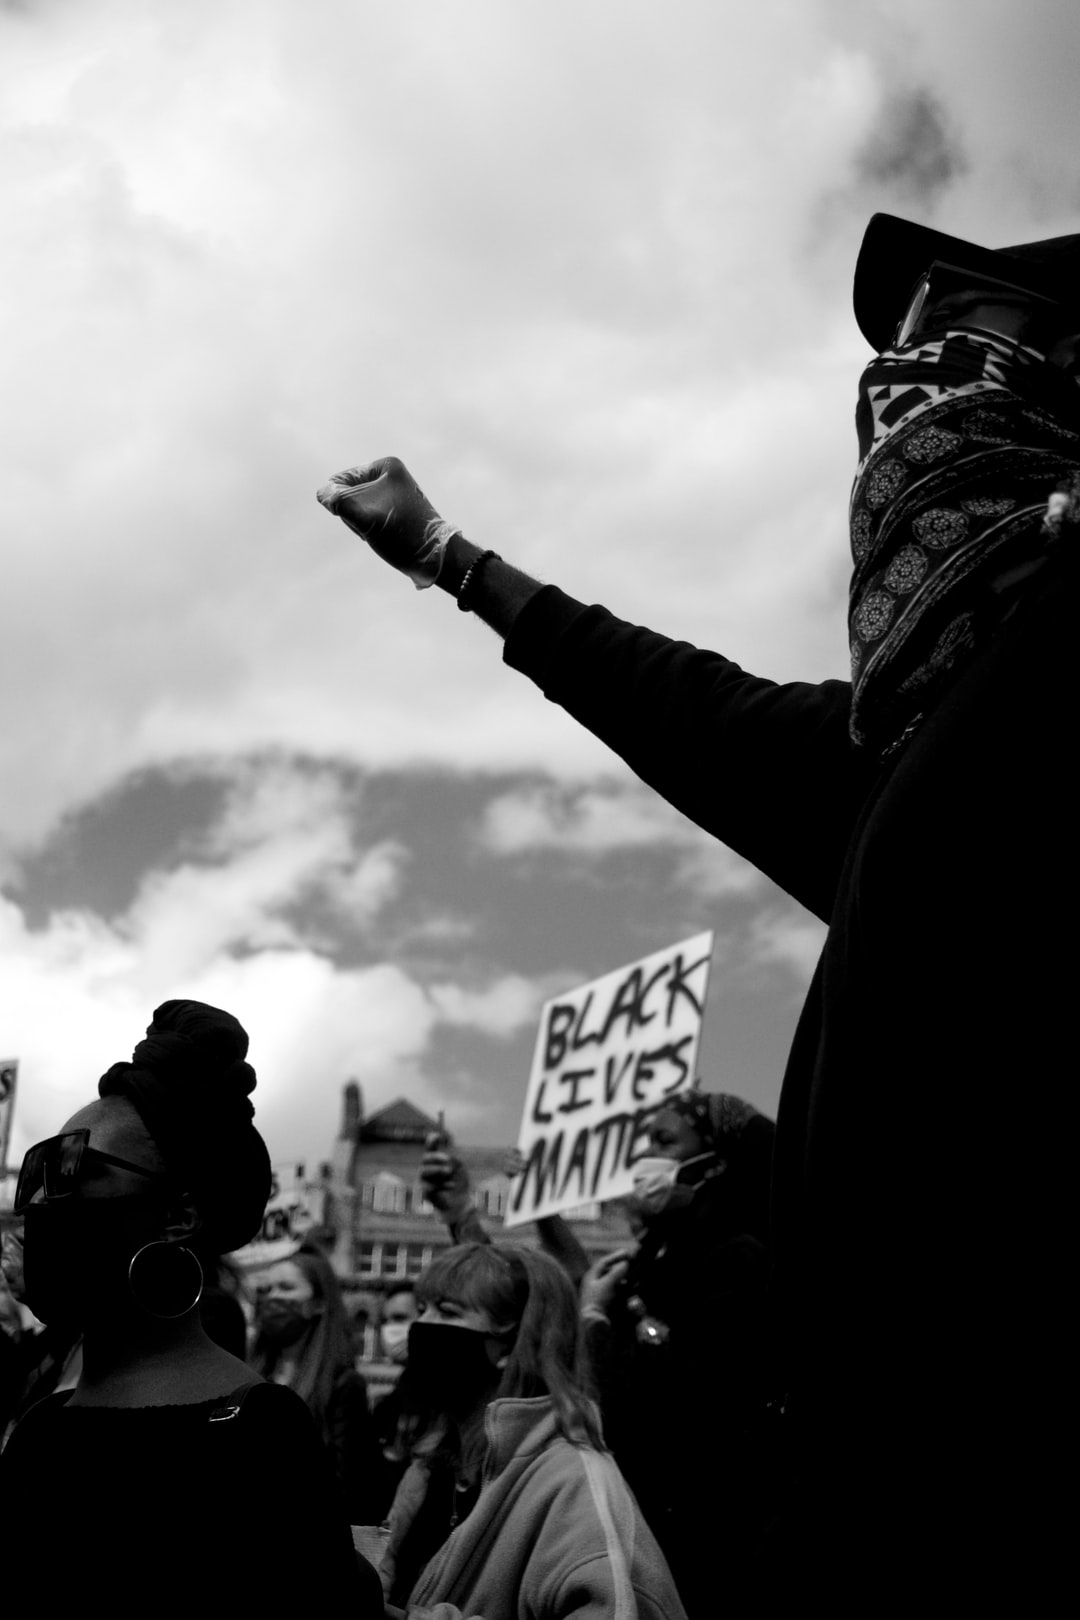 The people of Manchester break lockdown to join the global Black Lives Matter protests.